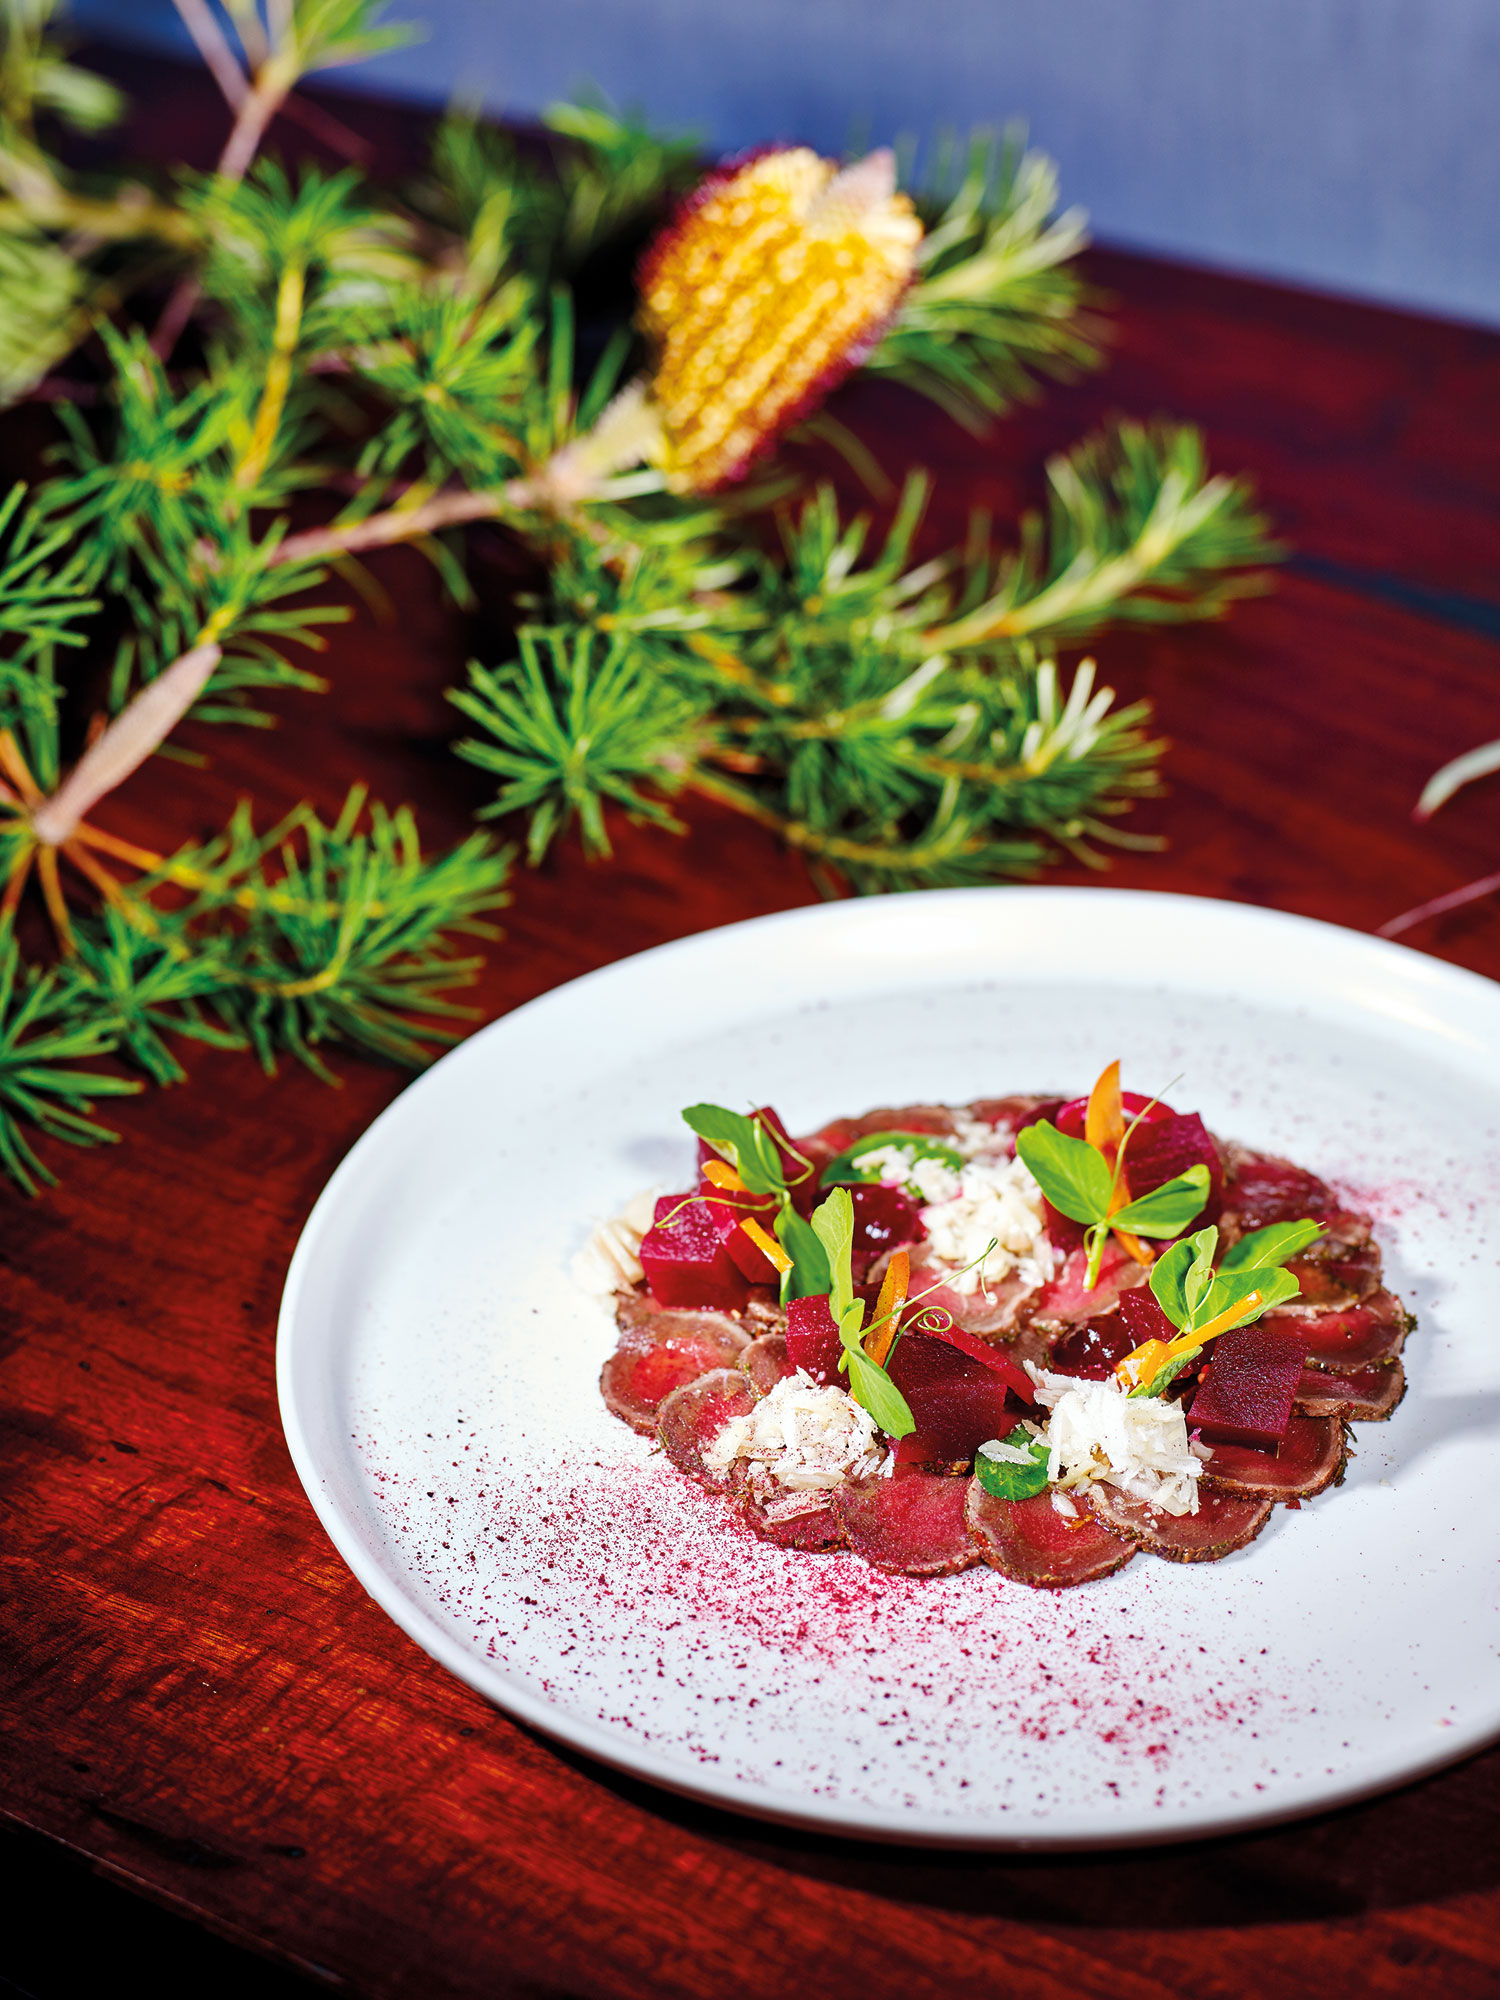 Kangaroo Carpaccio with Native Dukka